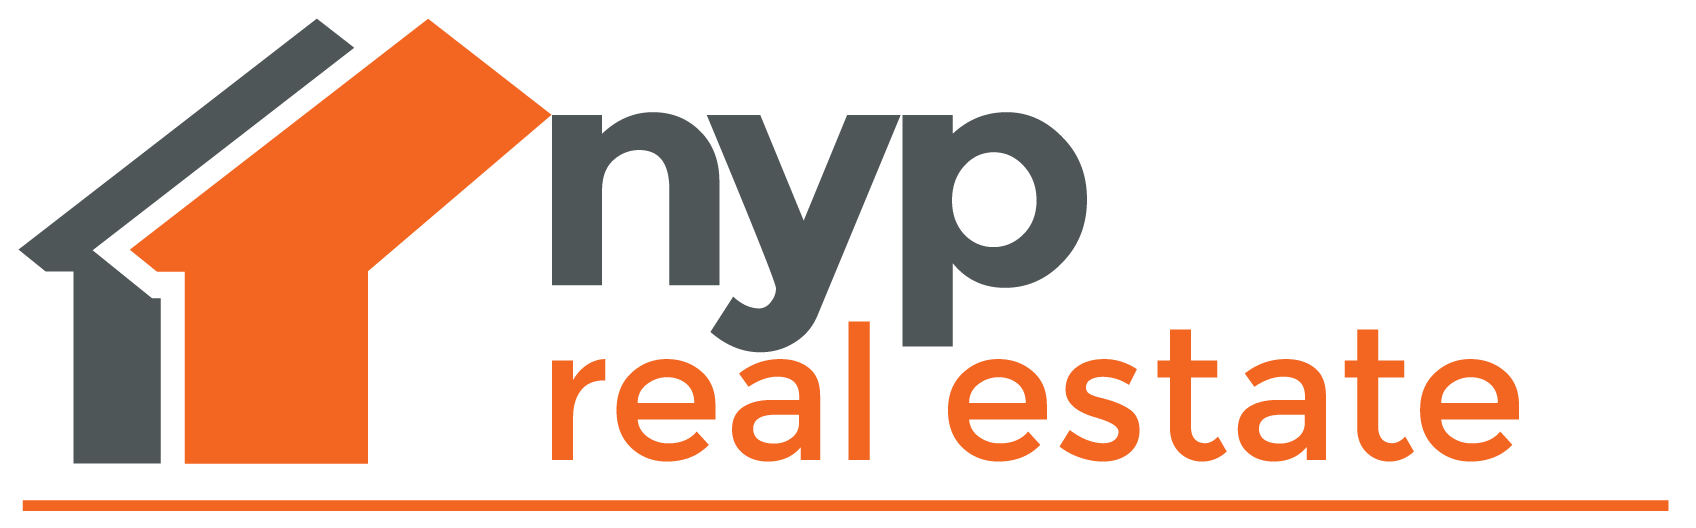 NYP Real Estate - logo